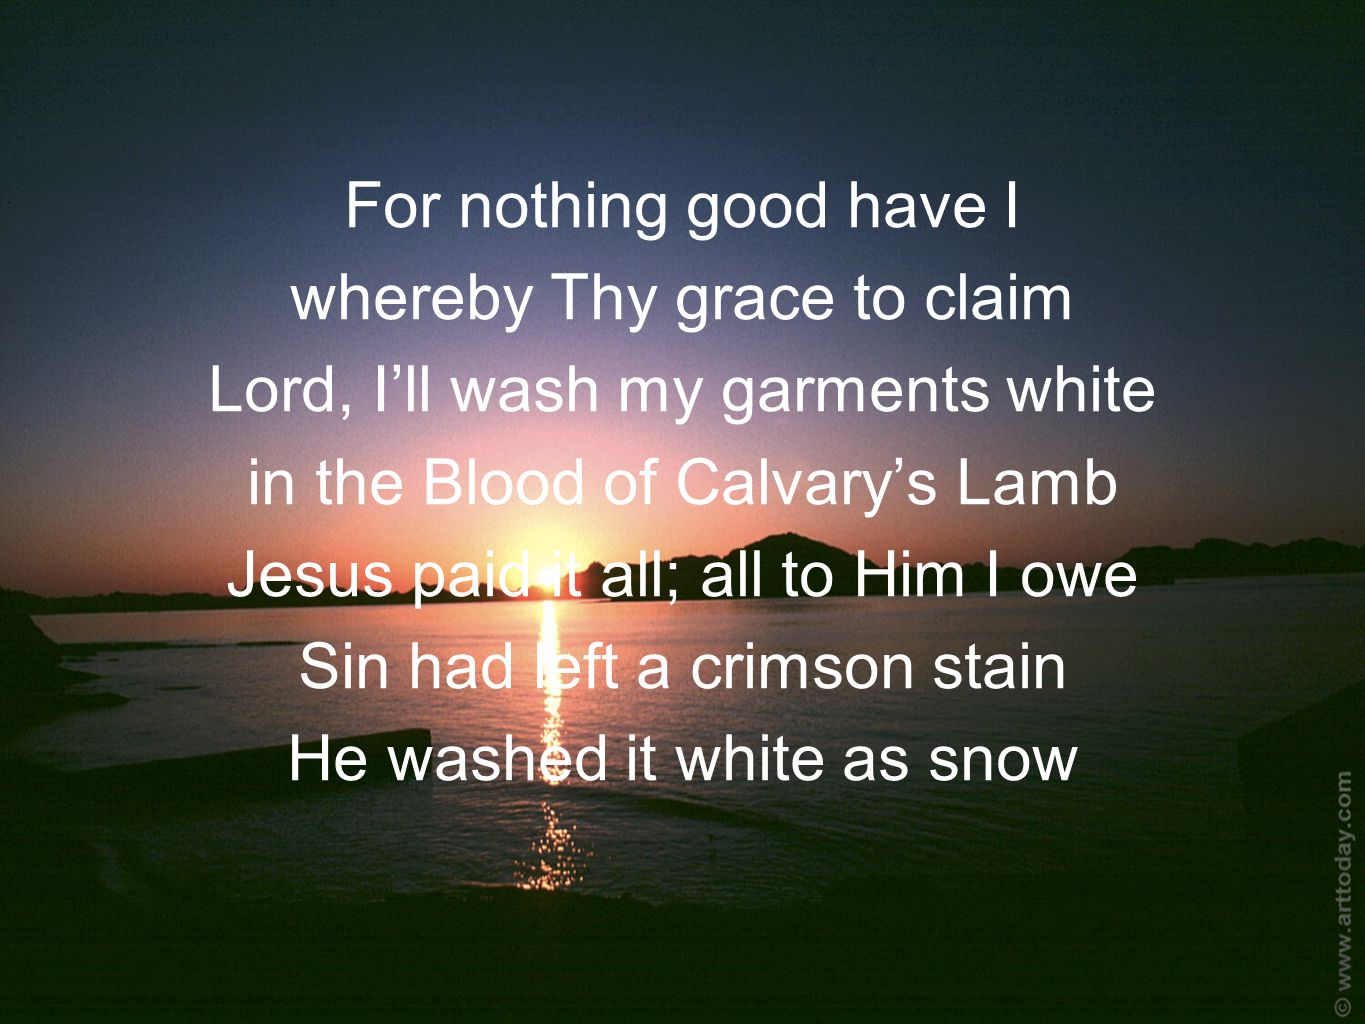 For nothing good have I whereby Thy grace to claim Lord, I'll wash my garments white in the Blood of Calvary's Lamb Jesus paid it all; all to Him I owe Sin had left a crimson stain He washed it white as snow